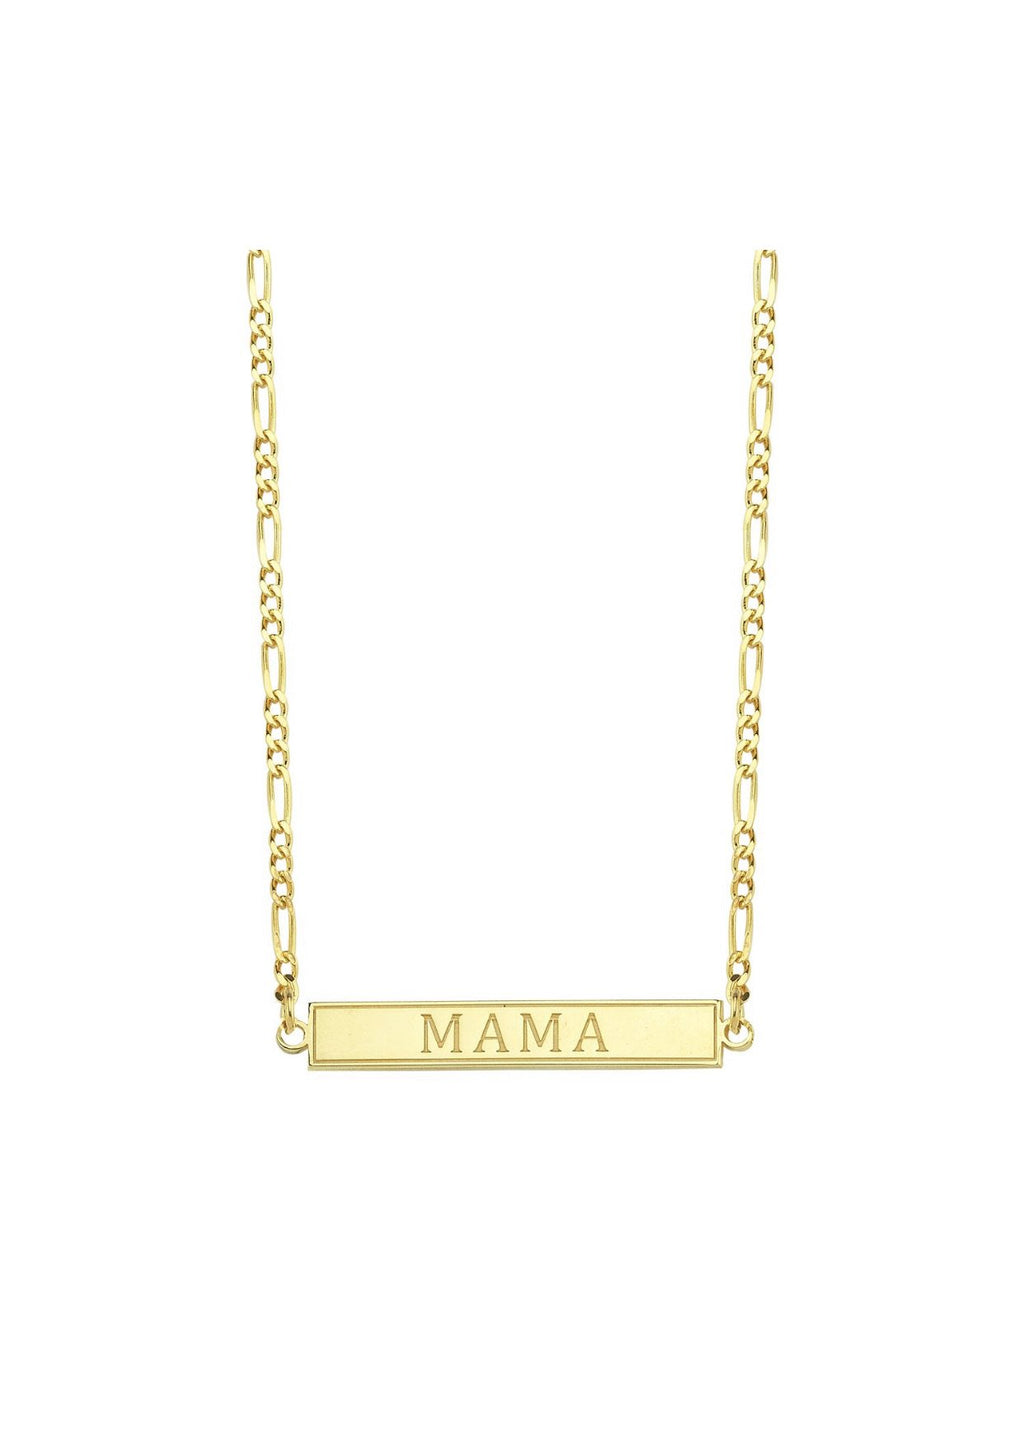 Mama Bar Chain Link Necklace JEWELRY The Sis Kiss